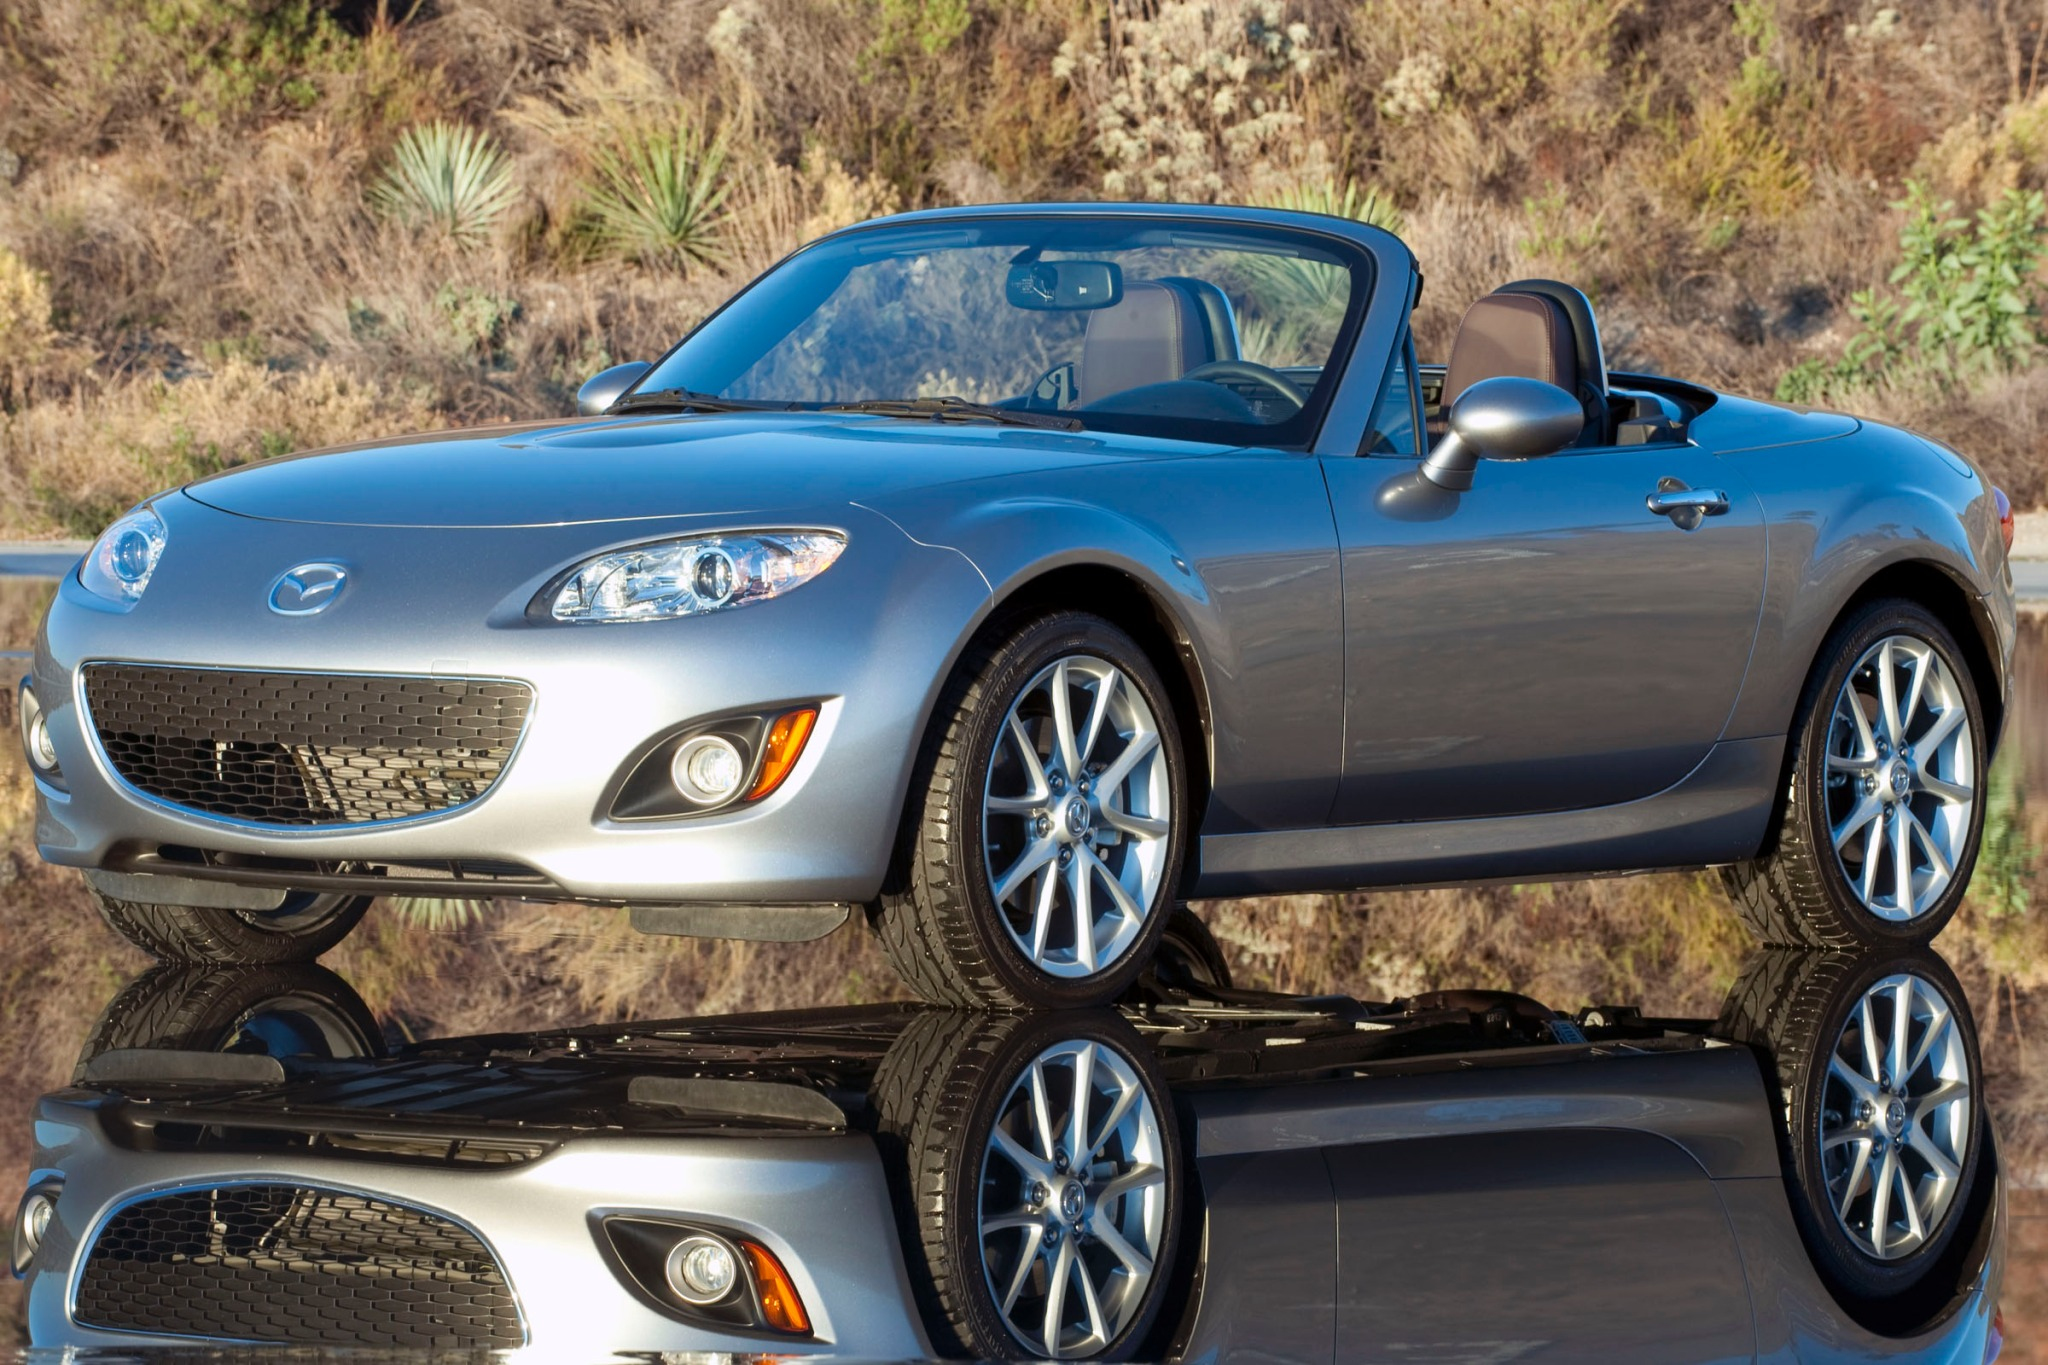 2012_mazda_mx-5-miata_convertible_grand-touring_fq_oem_4_2048